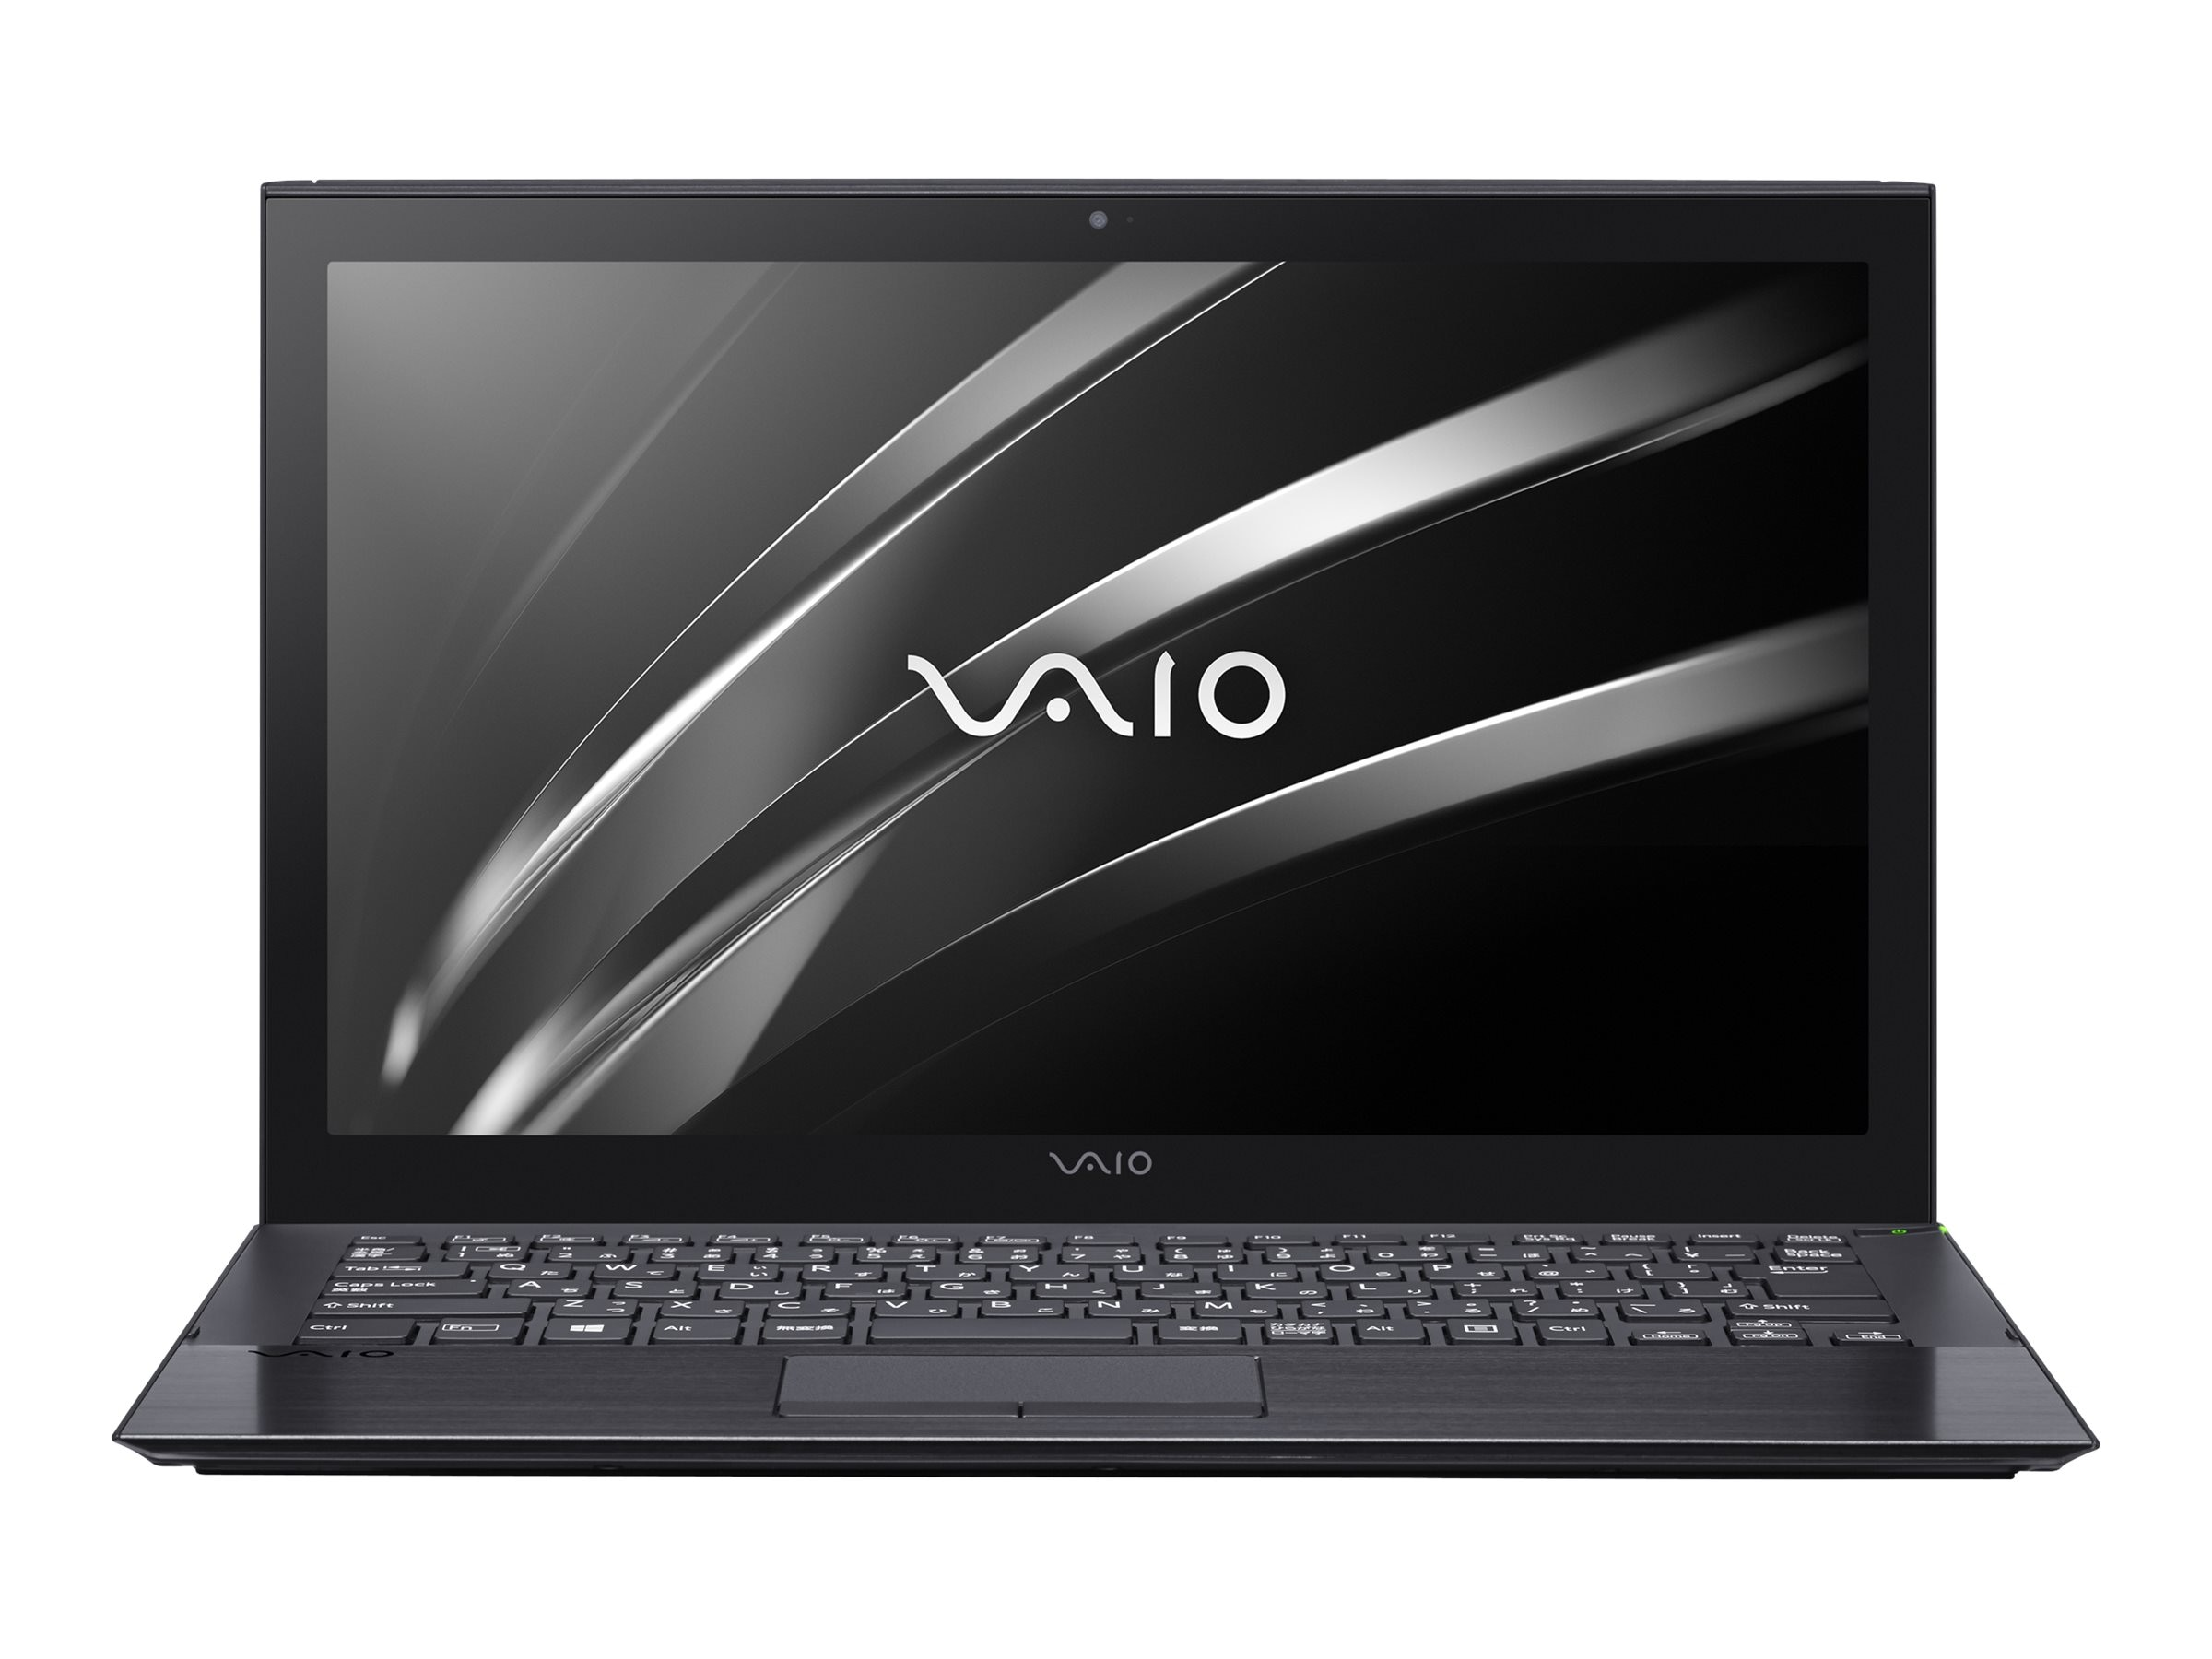 VAIO S 2.3GHz Core i5 13.3in display